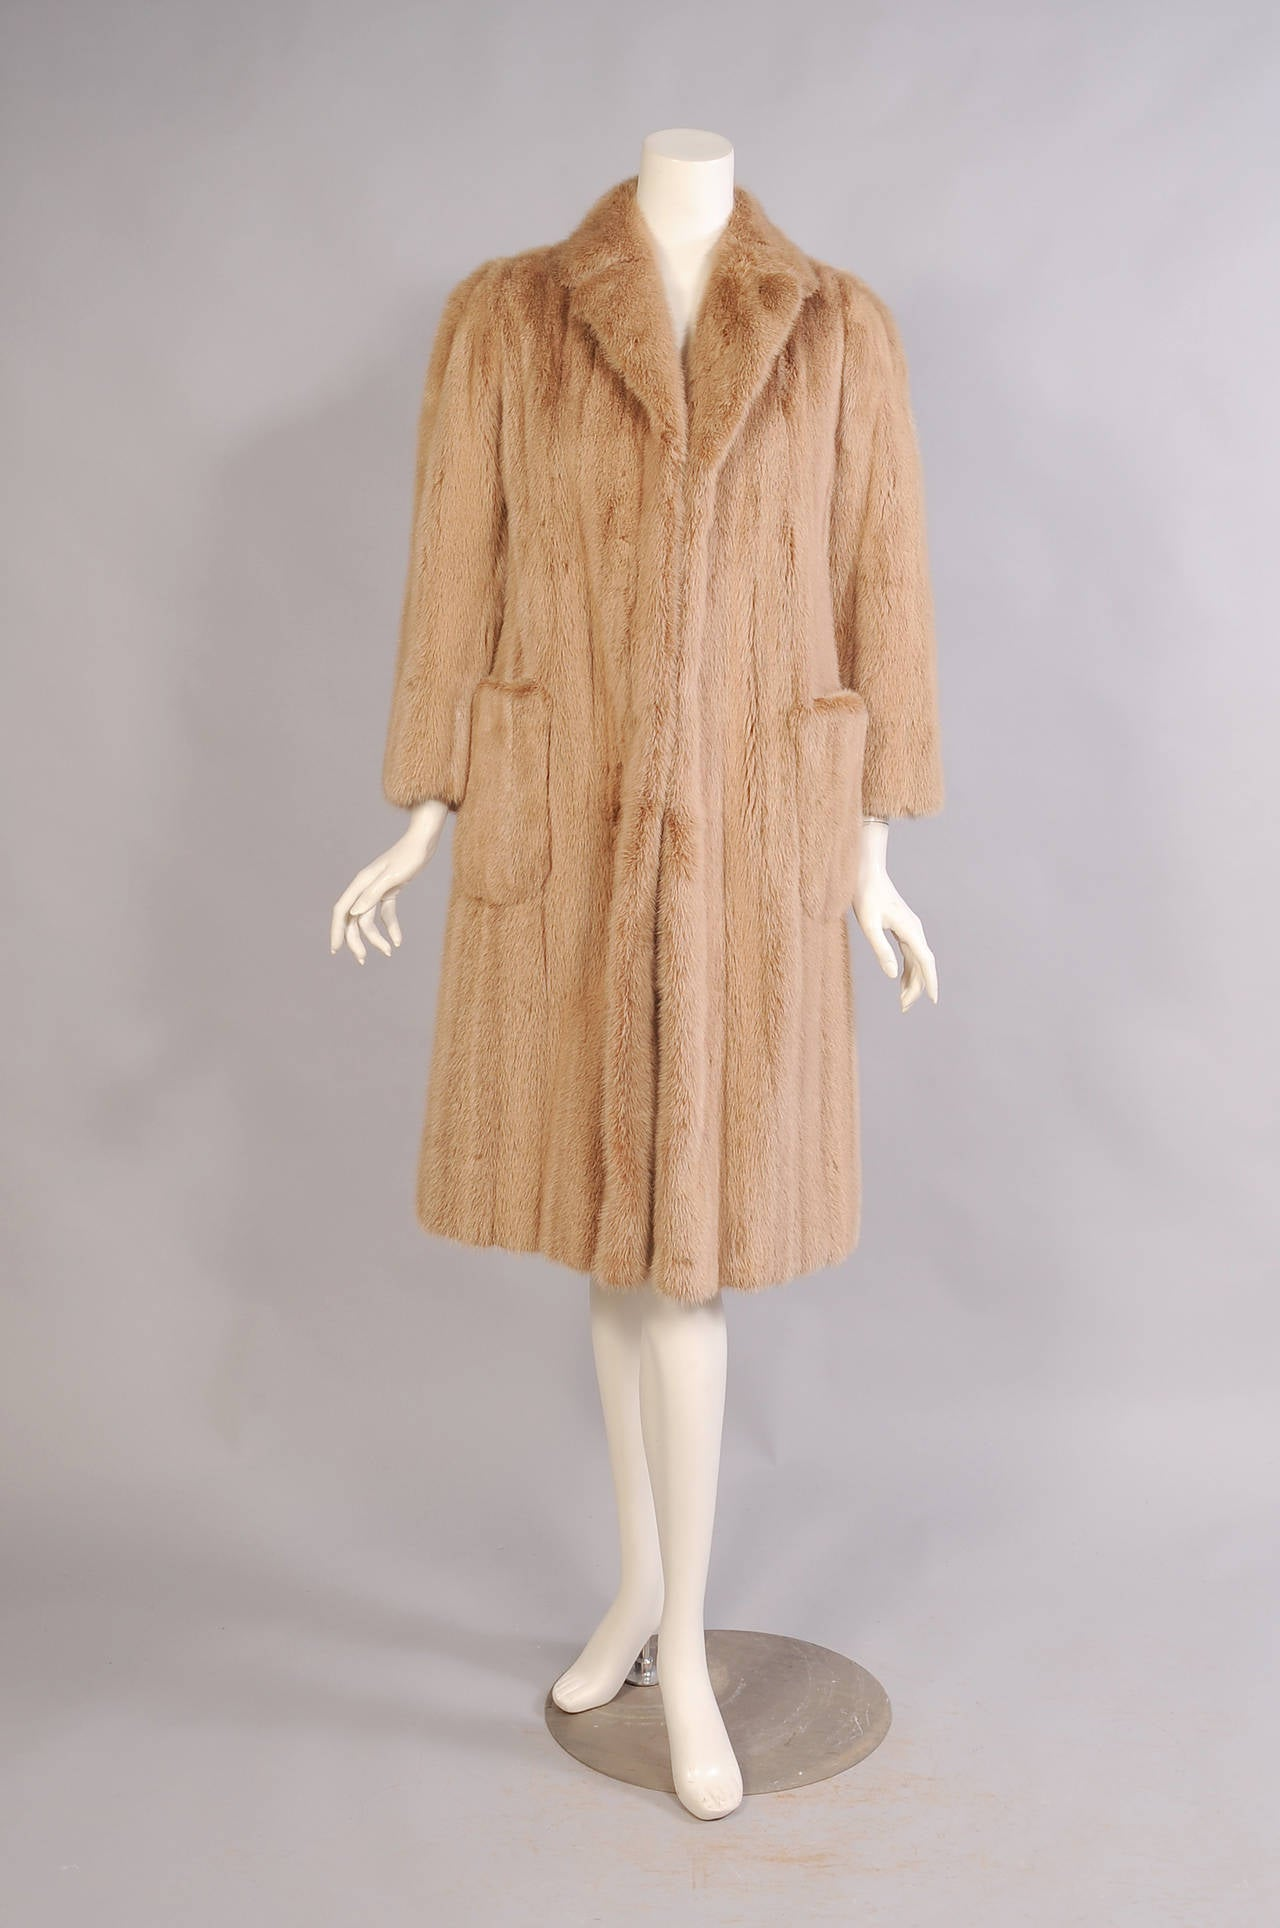 """This classic light mink coat has a notched lapel and two patch pockets. It is fully lined in matching silk and it is in excellent condition. Measurements; Shoulders 15"""" Bust 40"""" Sleeve 21.5 Length 41"""""""